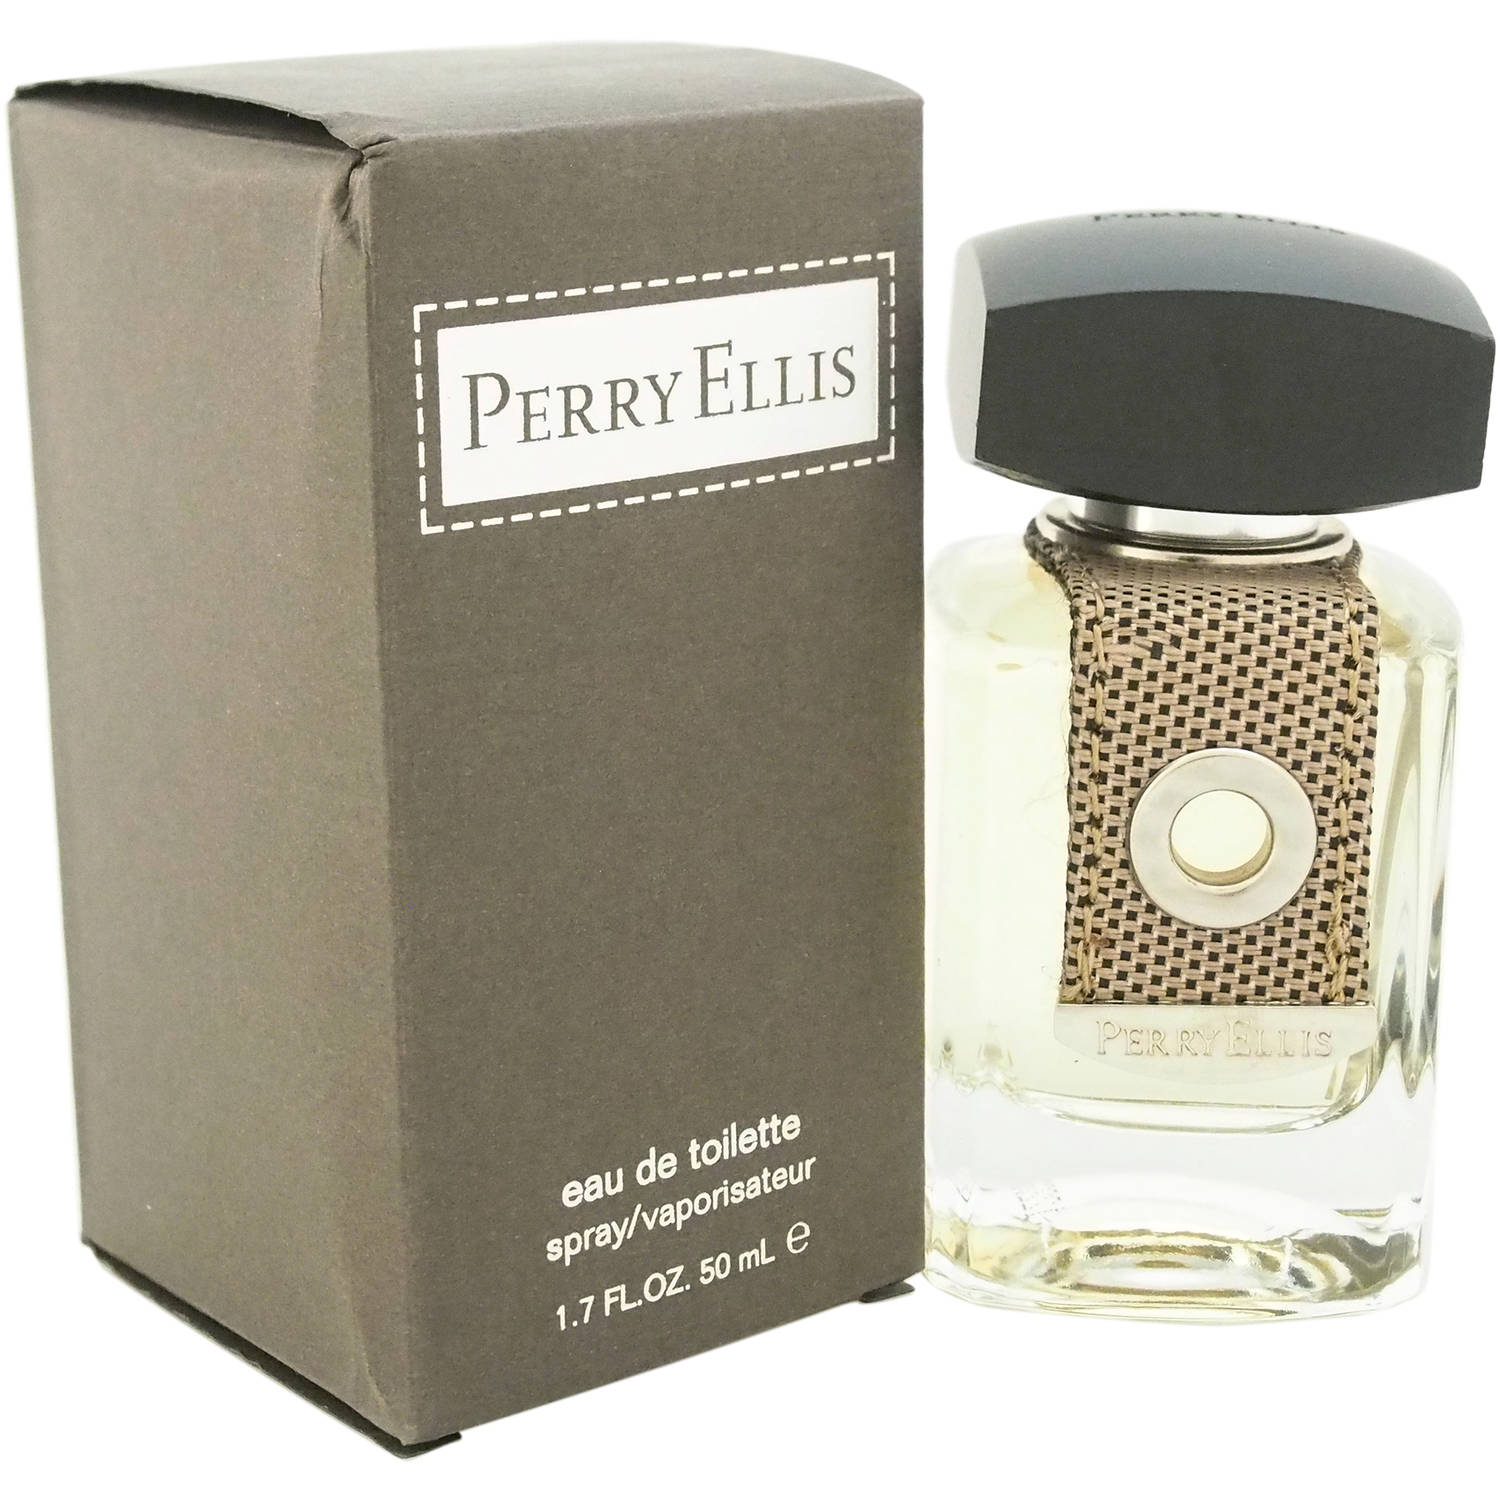 Perry Ellis by Perry Ellis for Men EDT Spray, 1.7 oz